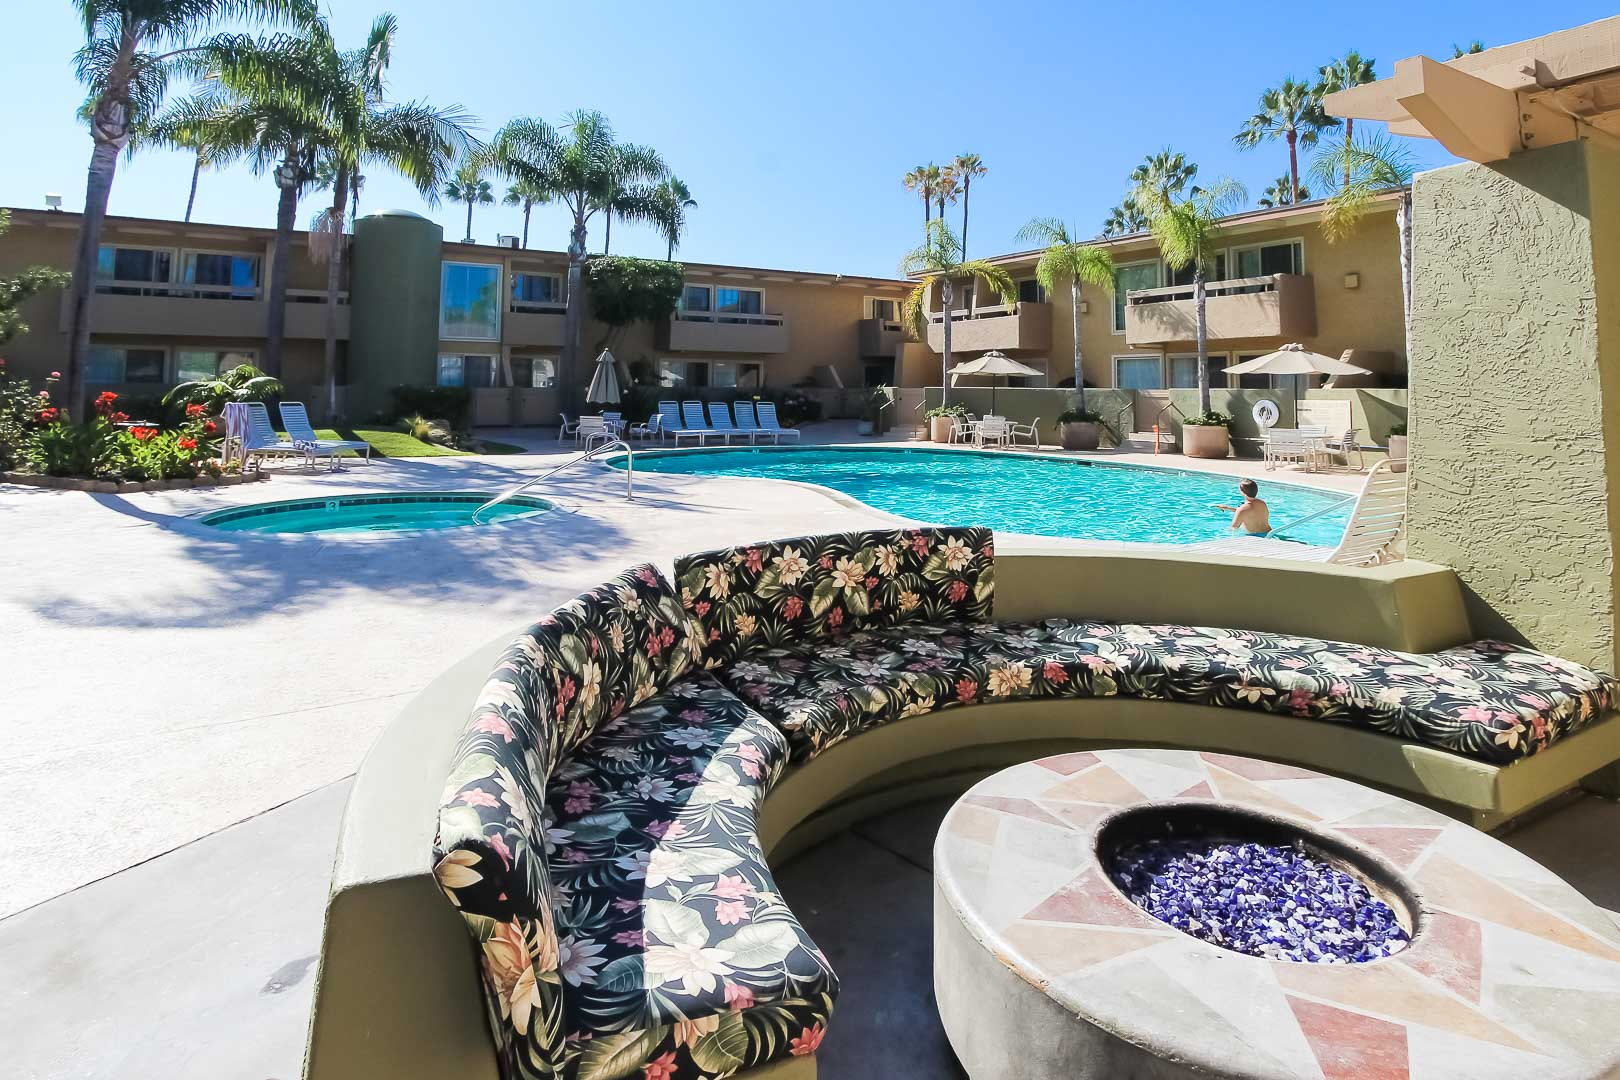 A bonfire pit next to the outdoor swimming pool at VRI's Winner Circle Resort in California.